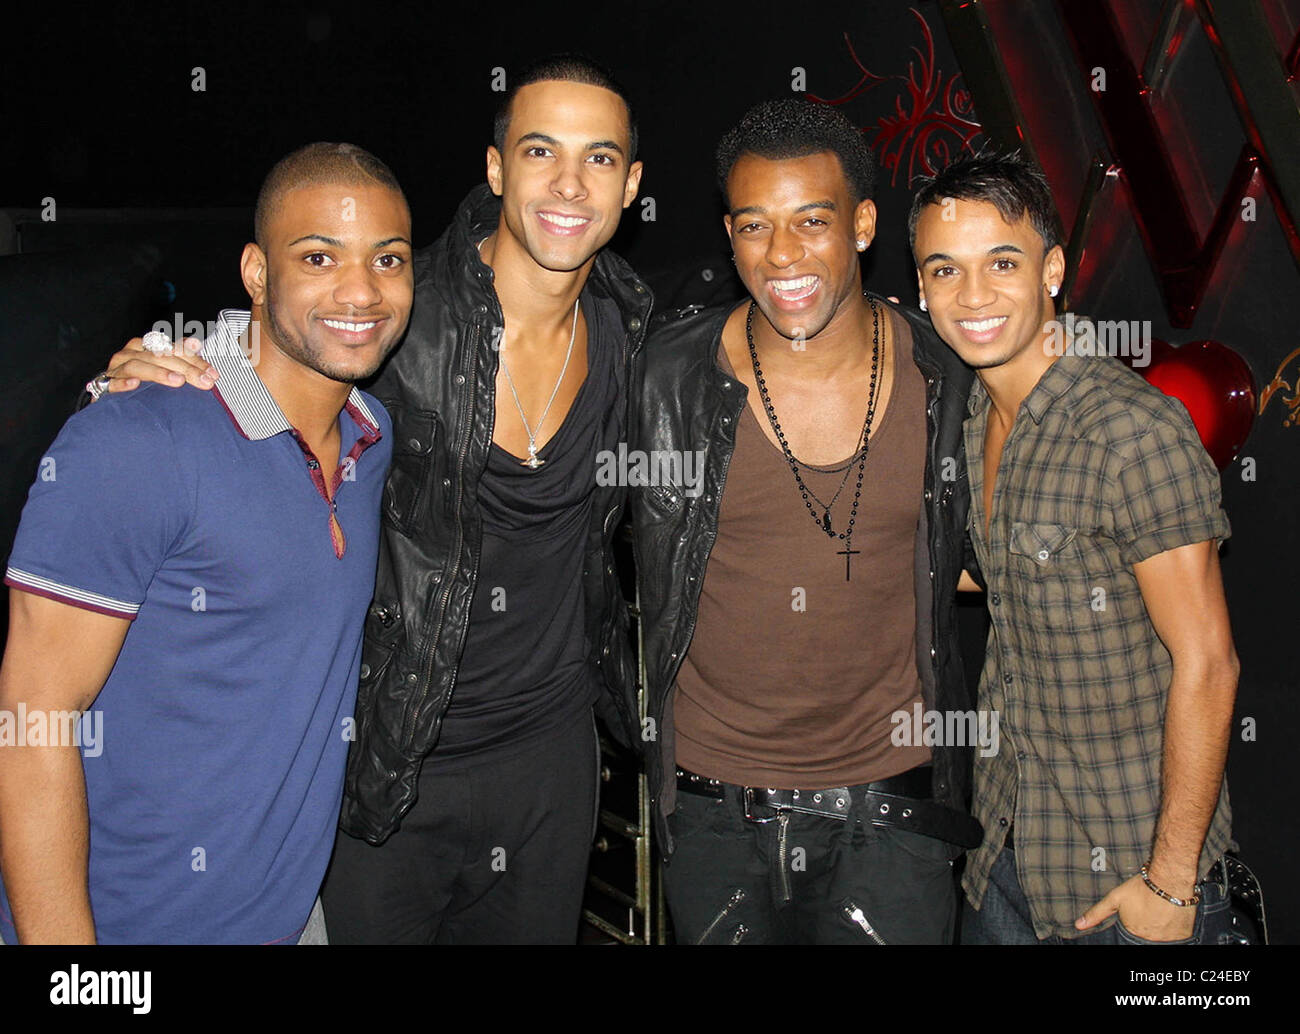 Who is jb from jls dating